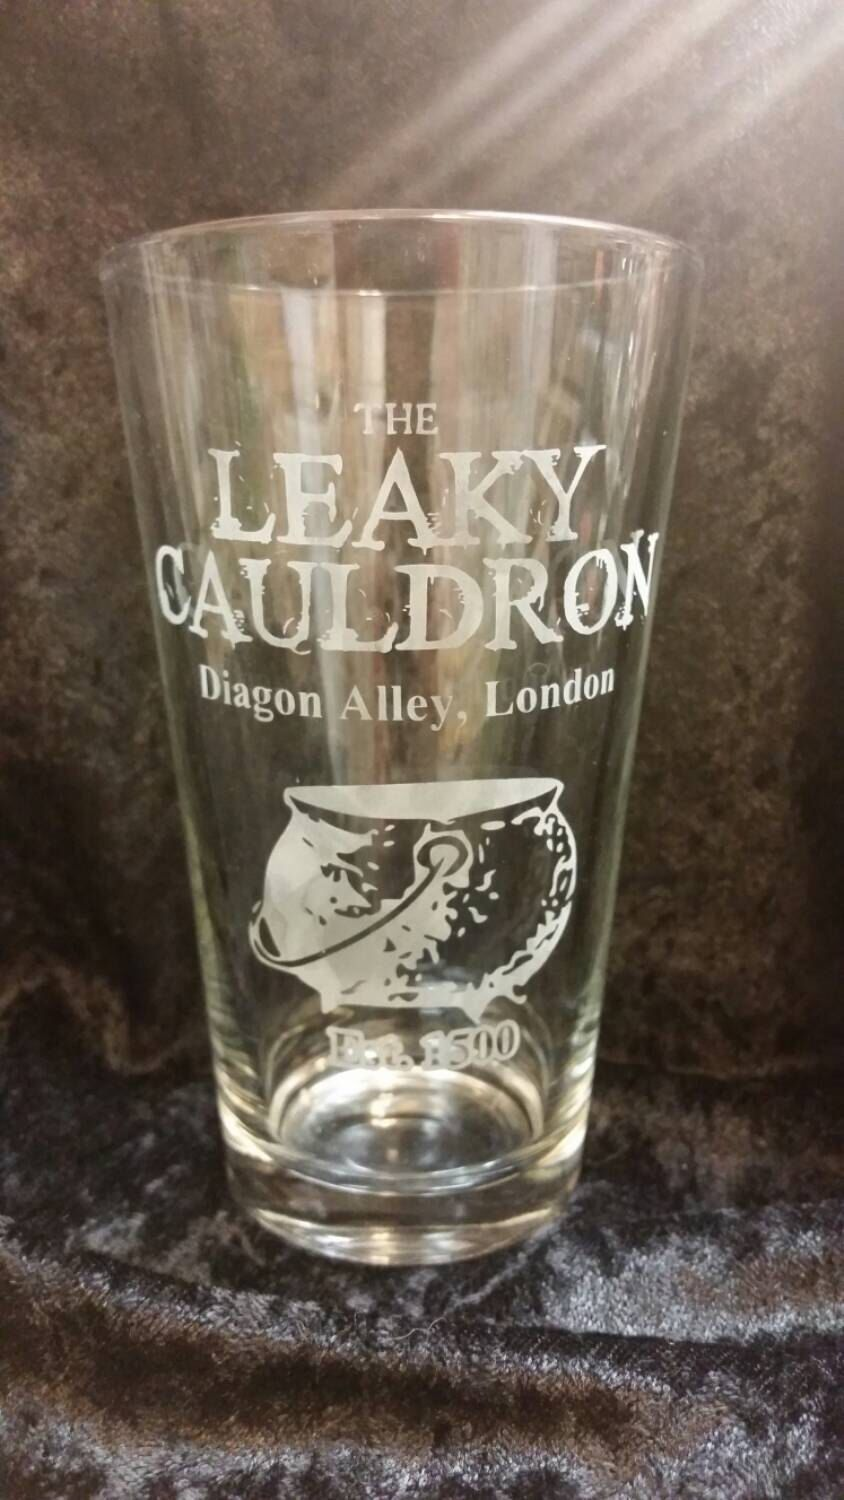 The Leaky Cauldron Harry Potter Pub Inspired Etched Glassware Diagon Alley London Est 1500 Etched Pint Glass Harry Potter Pint by SilverblattDesign on Etsy https://www.etsy.com/listing/241225037/the-leaky-cauldron-harry-potter-pub